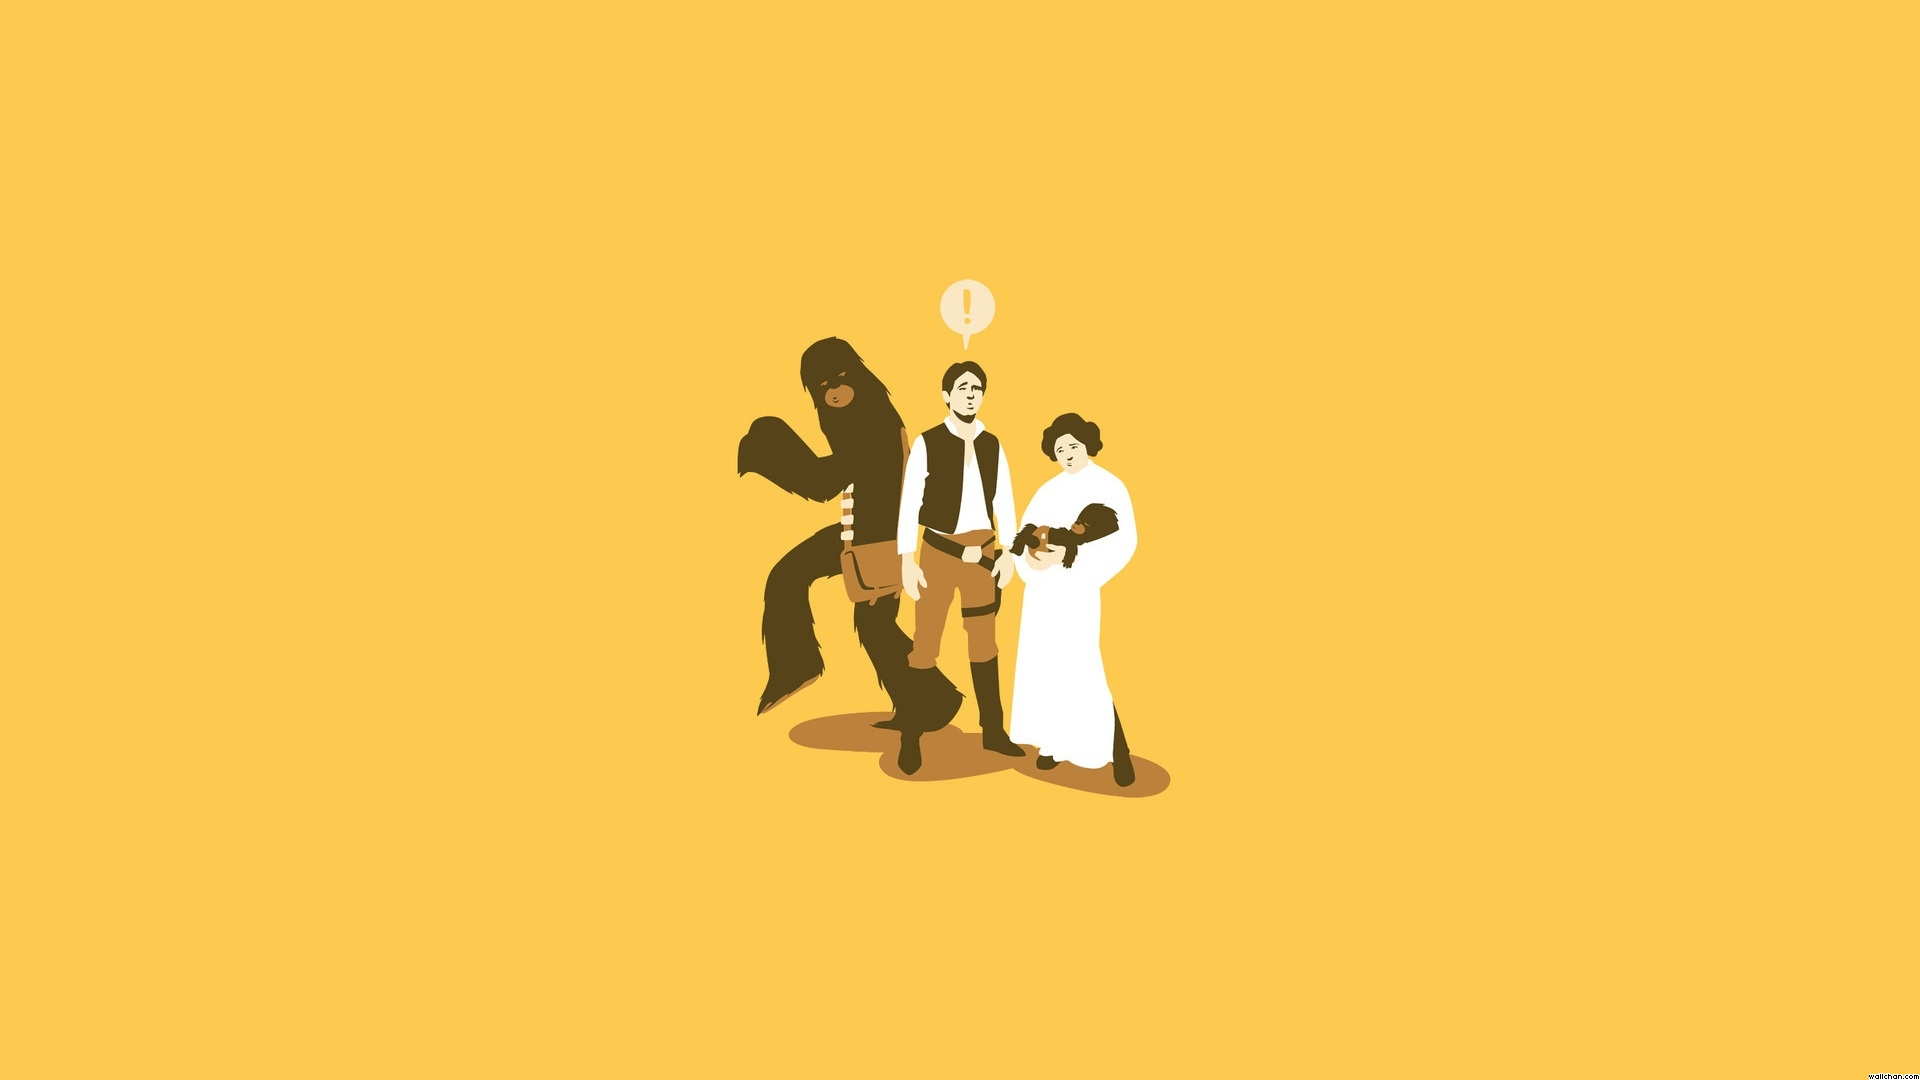 Star Wars Funny Wallpapers